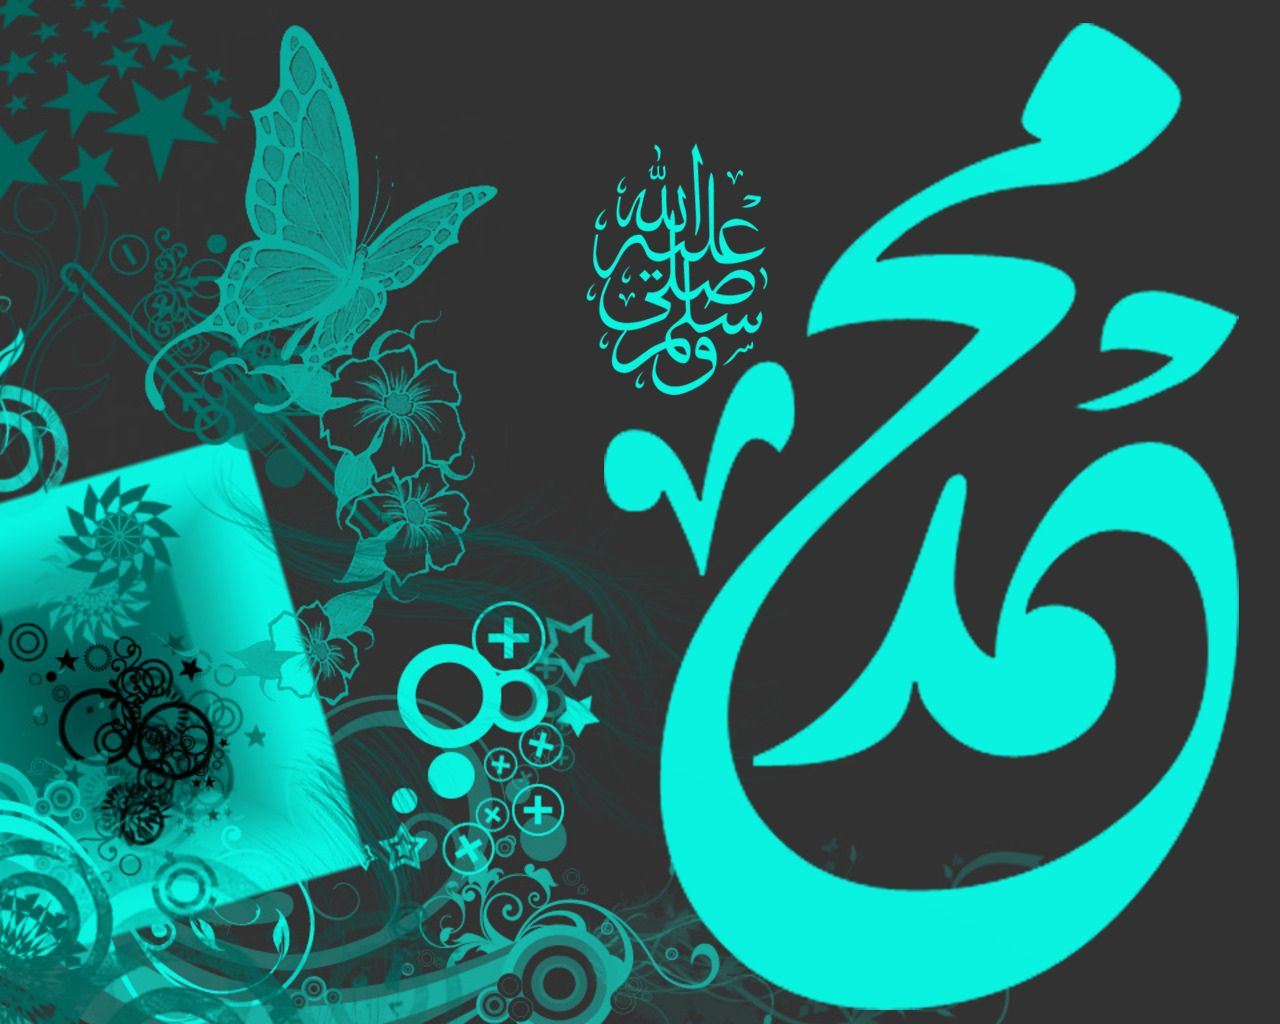 Hazrat Muhammad S A W Name Wallpaper Islamic Wallpaper Islamic Calligraphy Wallpapers